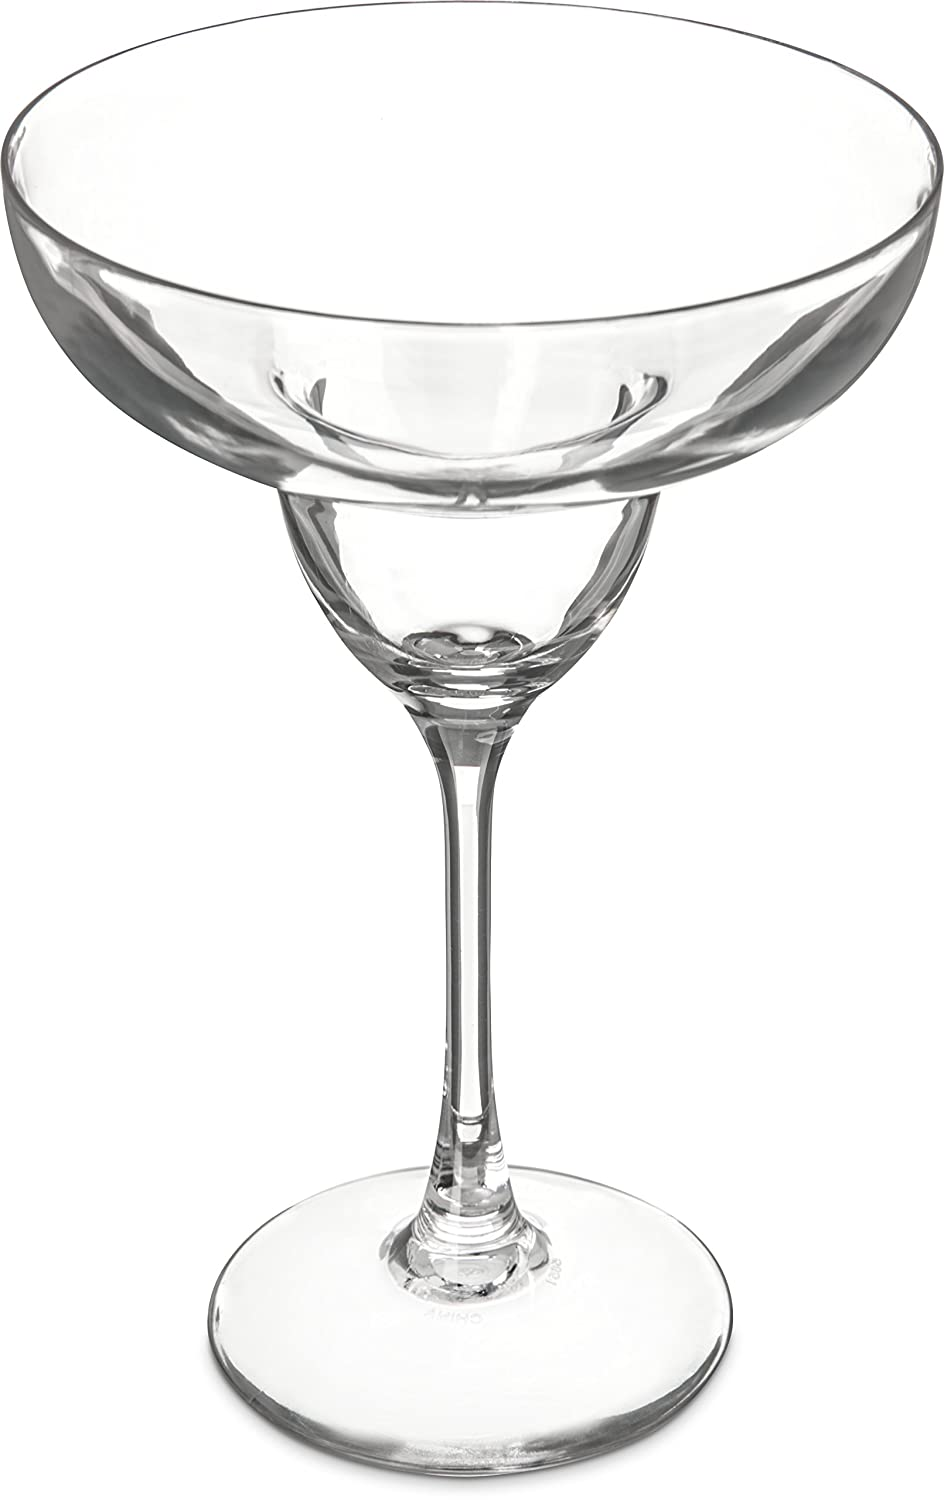 Carlisle 565107 Shatter-Resistant Plastic Margarita Glass, 11 Ounce, Clear (Pack of 24)